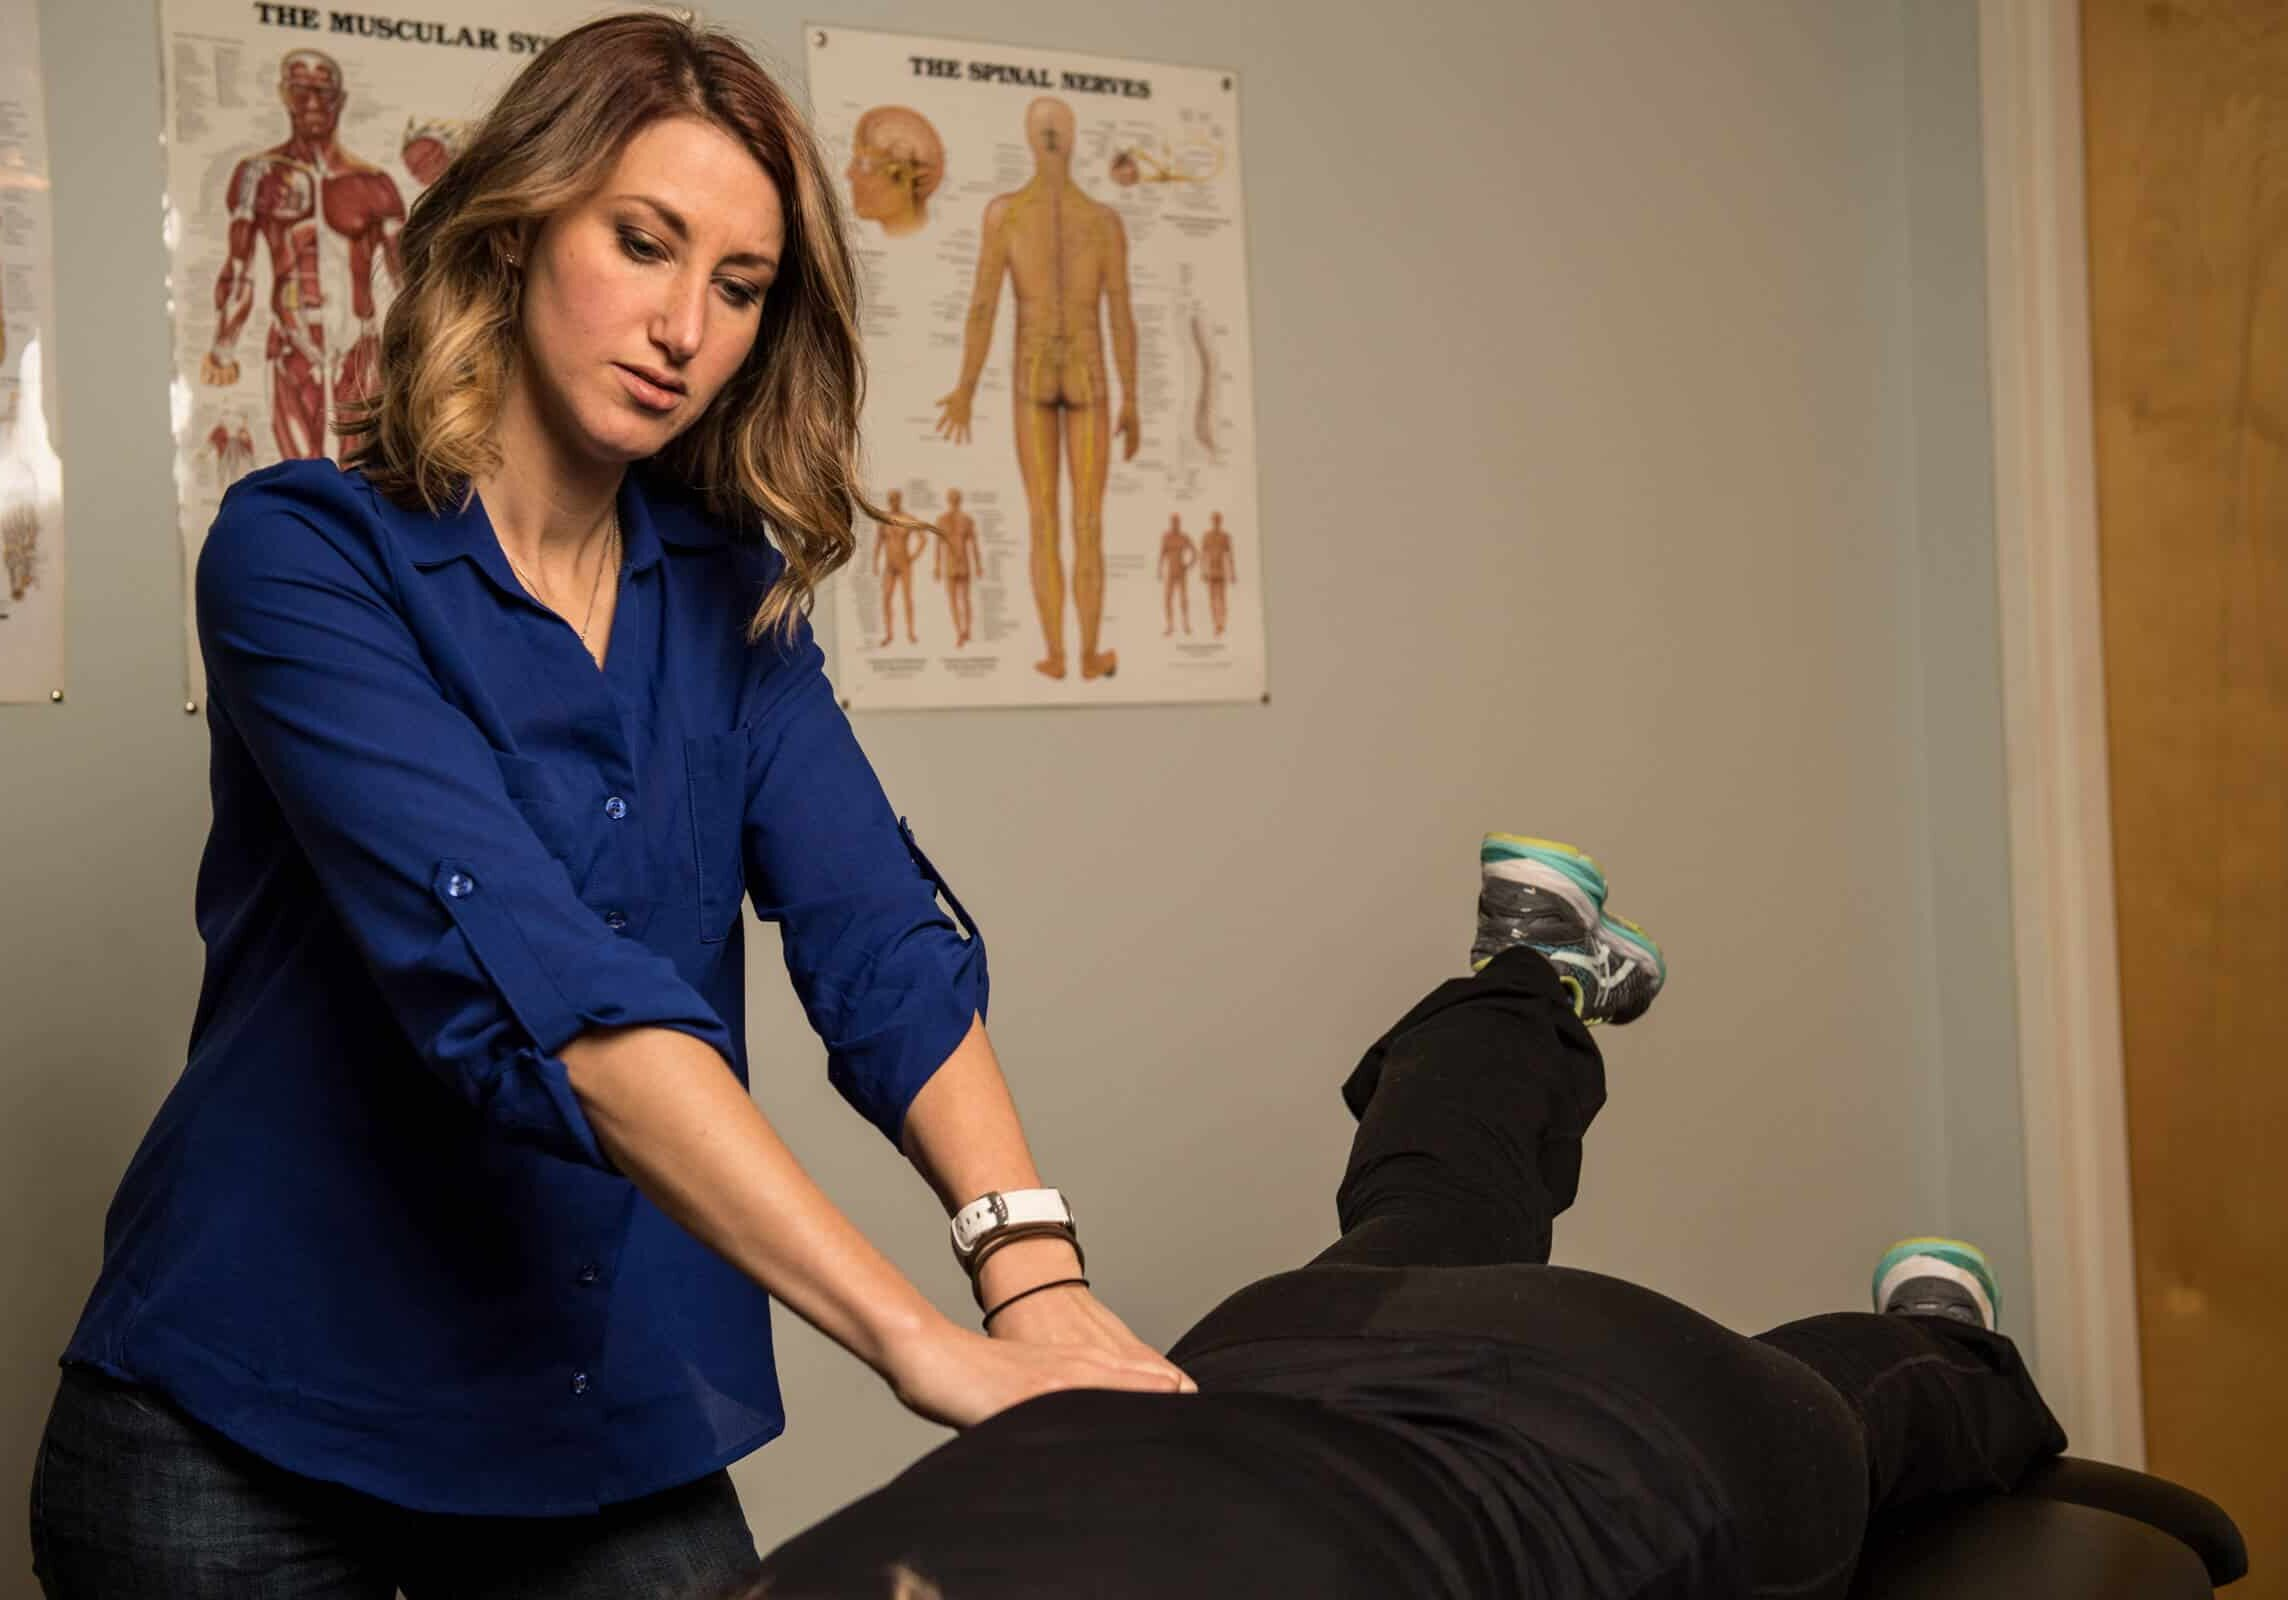 Dr. Craner putting pressure on a patients back to relieve pain